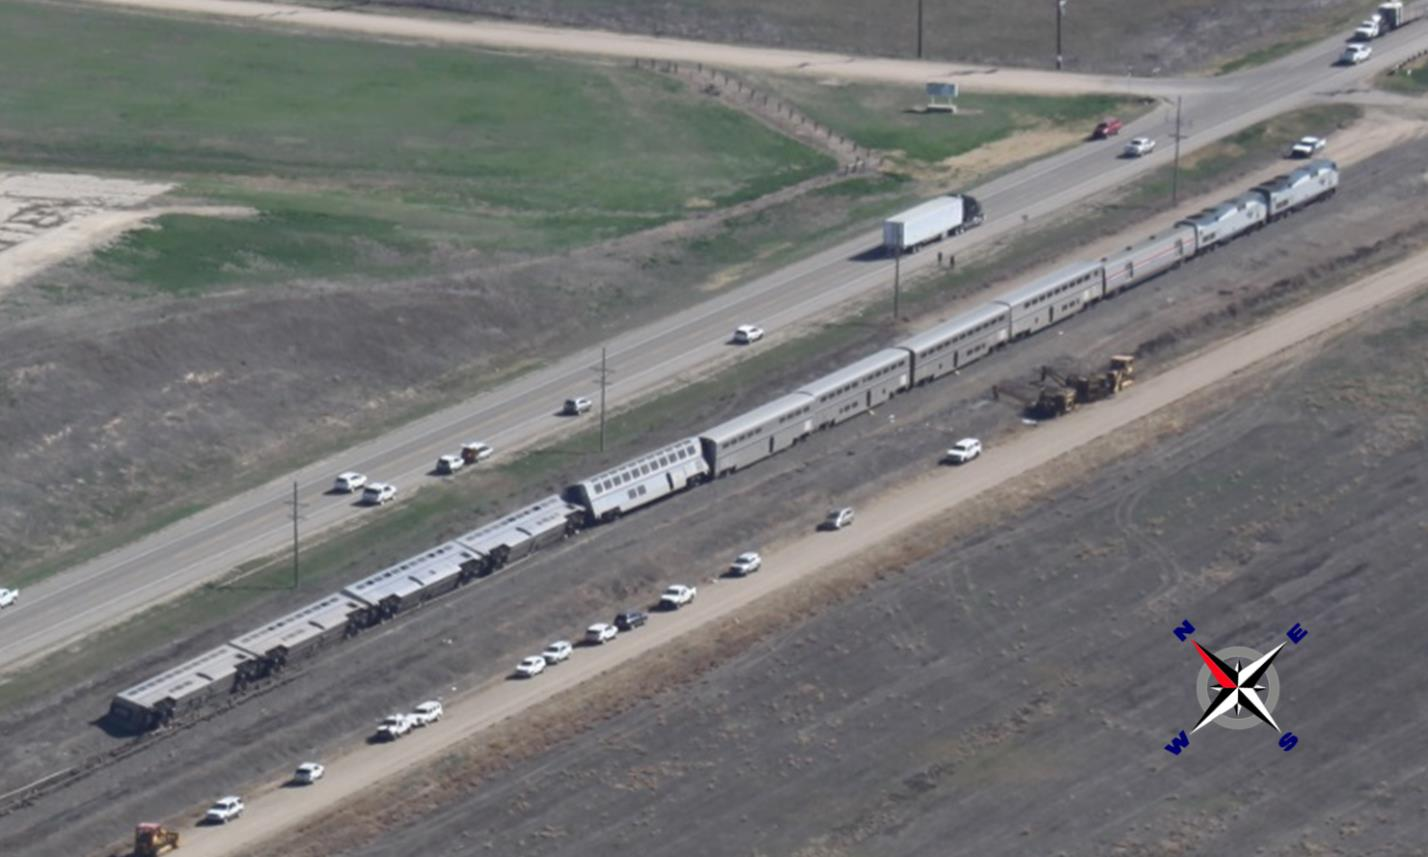 Aerial photograph of derailed Amtrak train shows the last four cars on their sides on the north side of the main track.